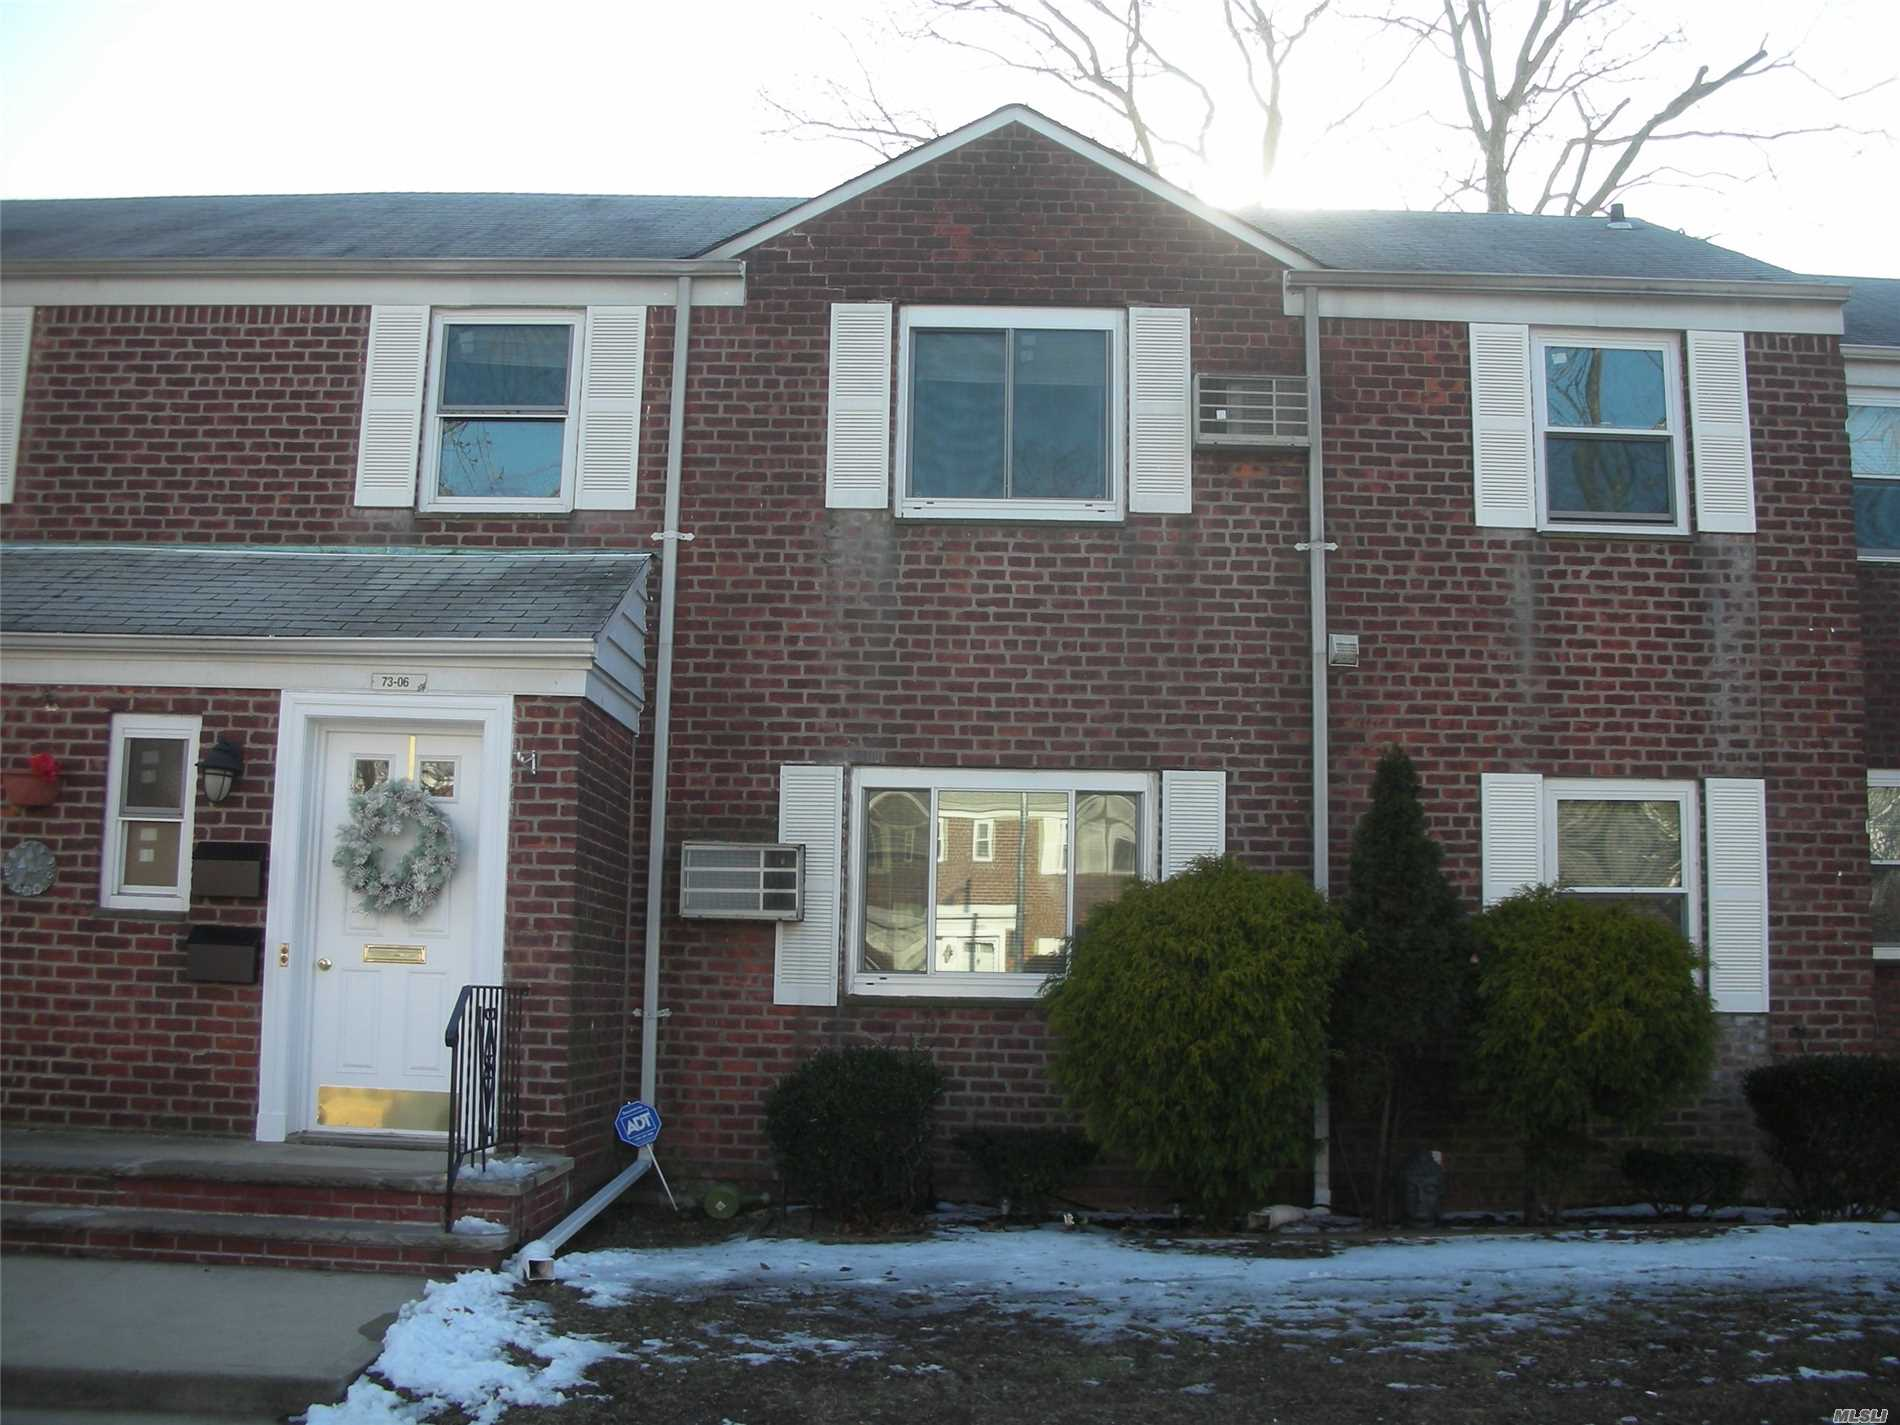 Large Upper 2Br G, Recessed Hi Hat Lighting In Lr And Kitchen, Kitchen Has 42 Custom Mica Cabinetry And Breakfast Bar, Double Slider Closet In Master Br, White Tiled Bath, Pull Down Stairs To Large Storage Attic, 1 Block To Local And Express Buses.